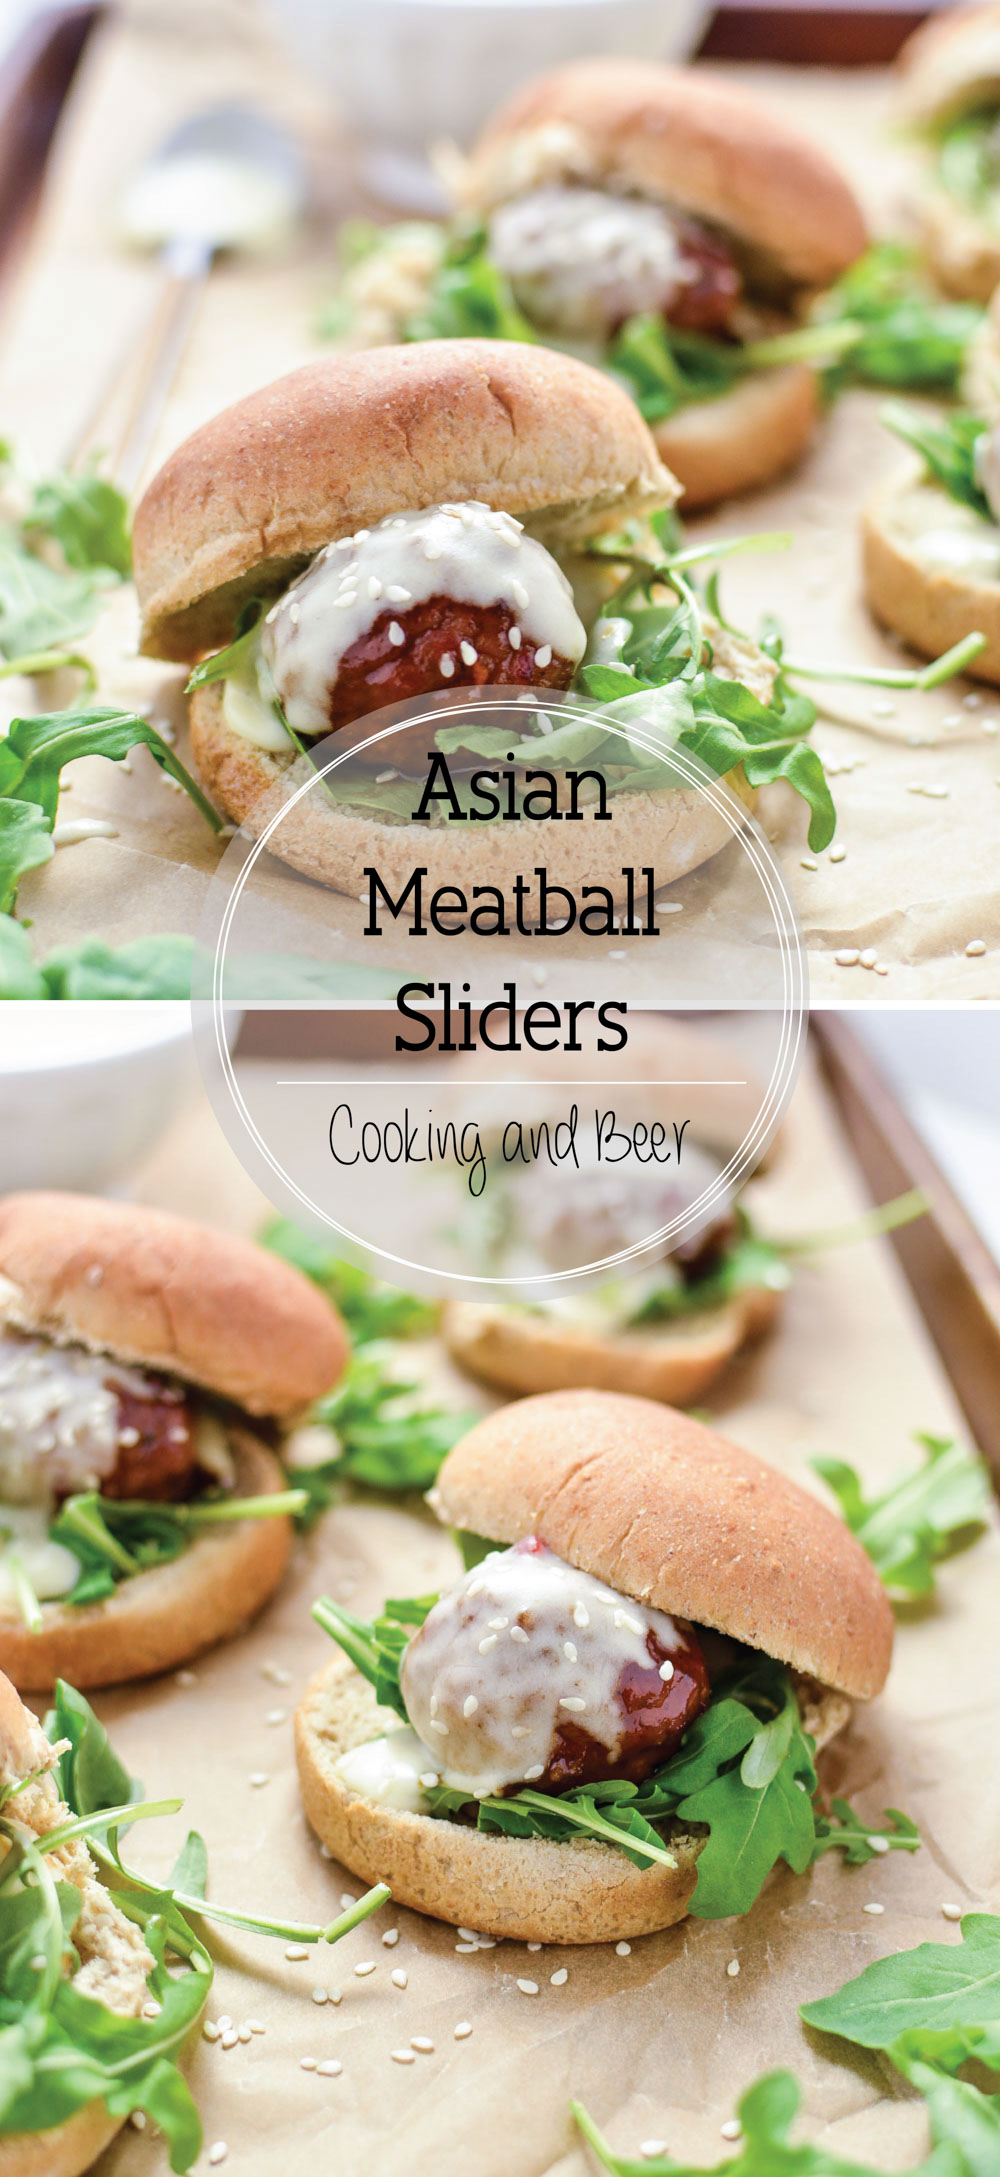 Asian Meatball Sliders are the perfect quick-bite appetizer recipe for entertaining this holiday season!